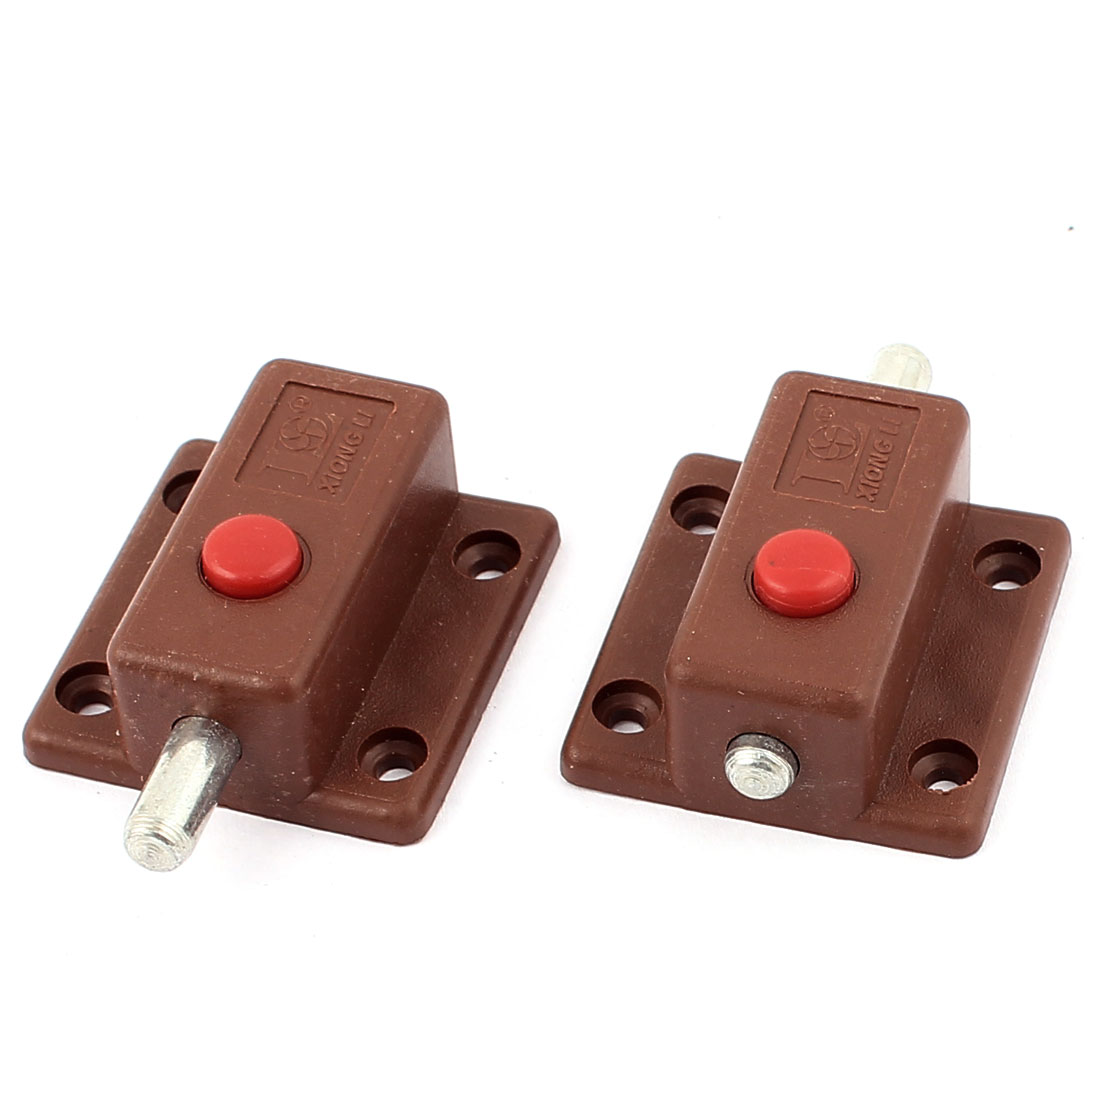 Gate Cupboard Door Latch Lock Automatic Barrel Bolt Brown 2pcs